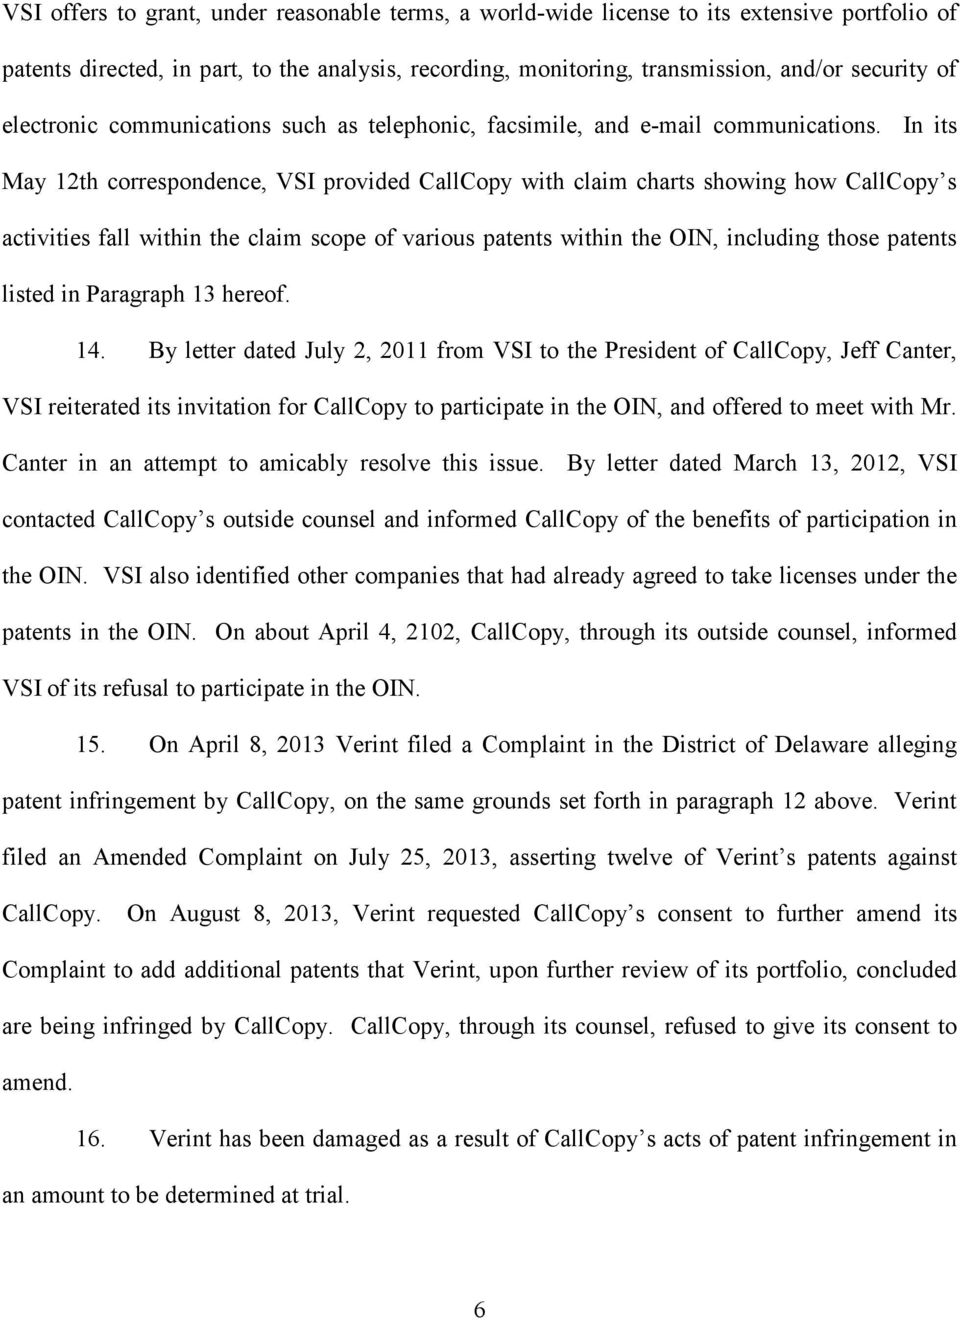 In its May 12th correspondence, VSI provided CallCopy with claim charts showing how CallCopy s activities fall within the claim scope of various patents within the OIN, including those patents listed